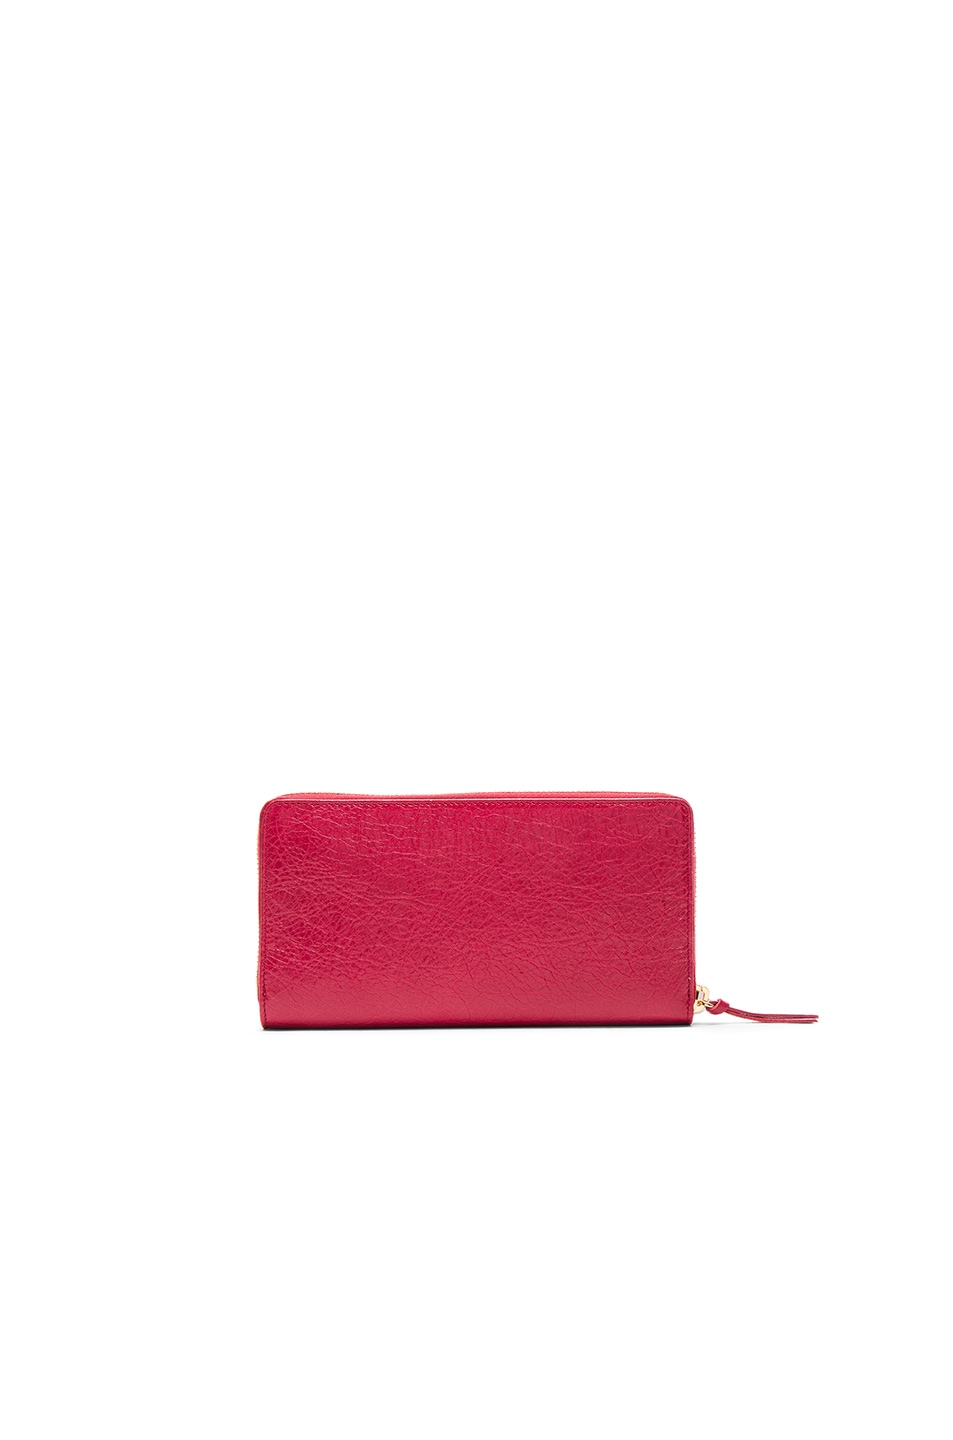 Image 2 of Balenciaga Classic Continental Wallet in Saffron Red